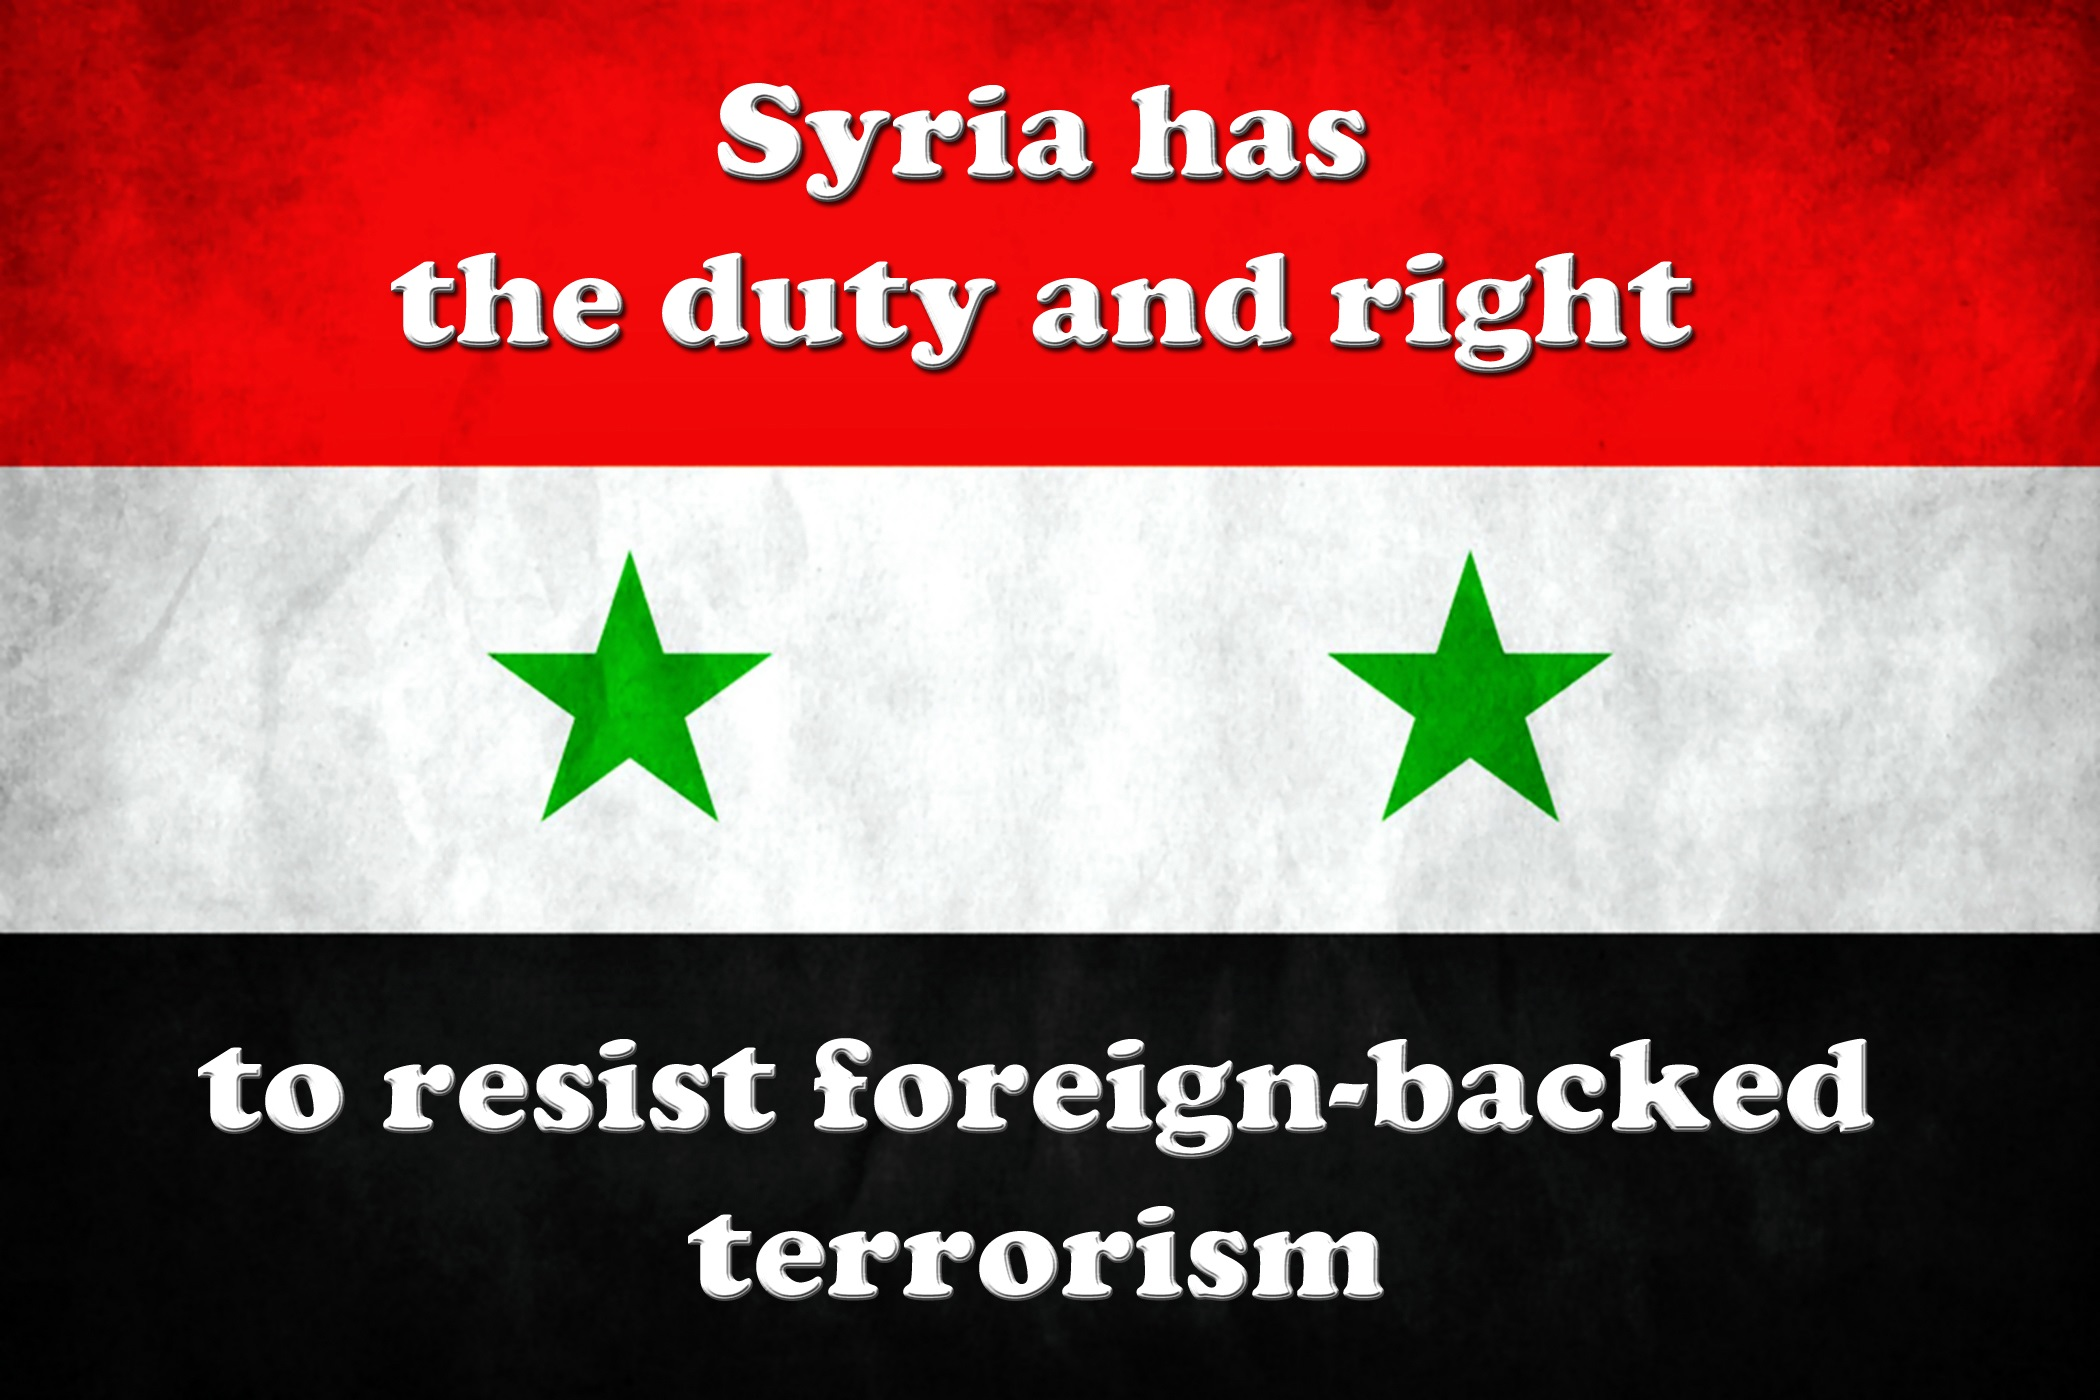 00 syria has the right to resist terrorism 261115